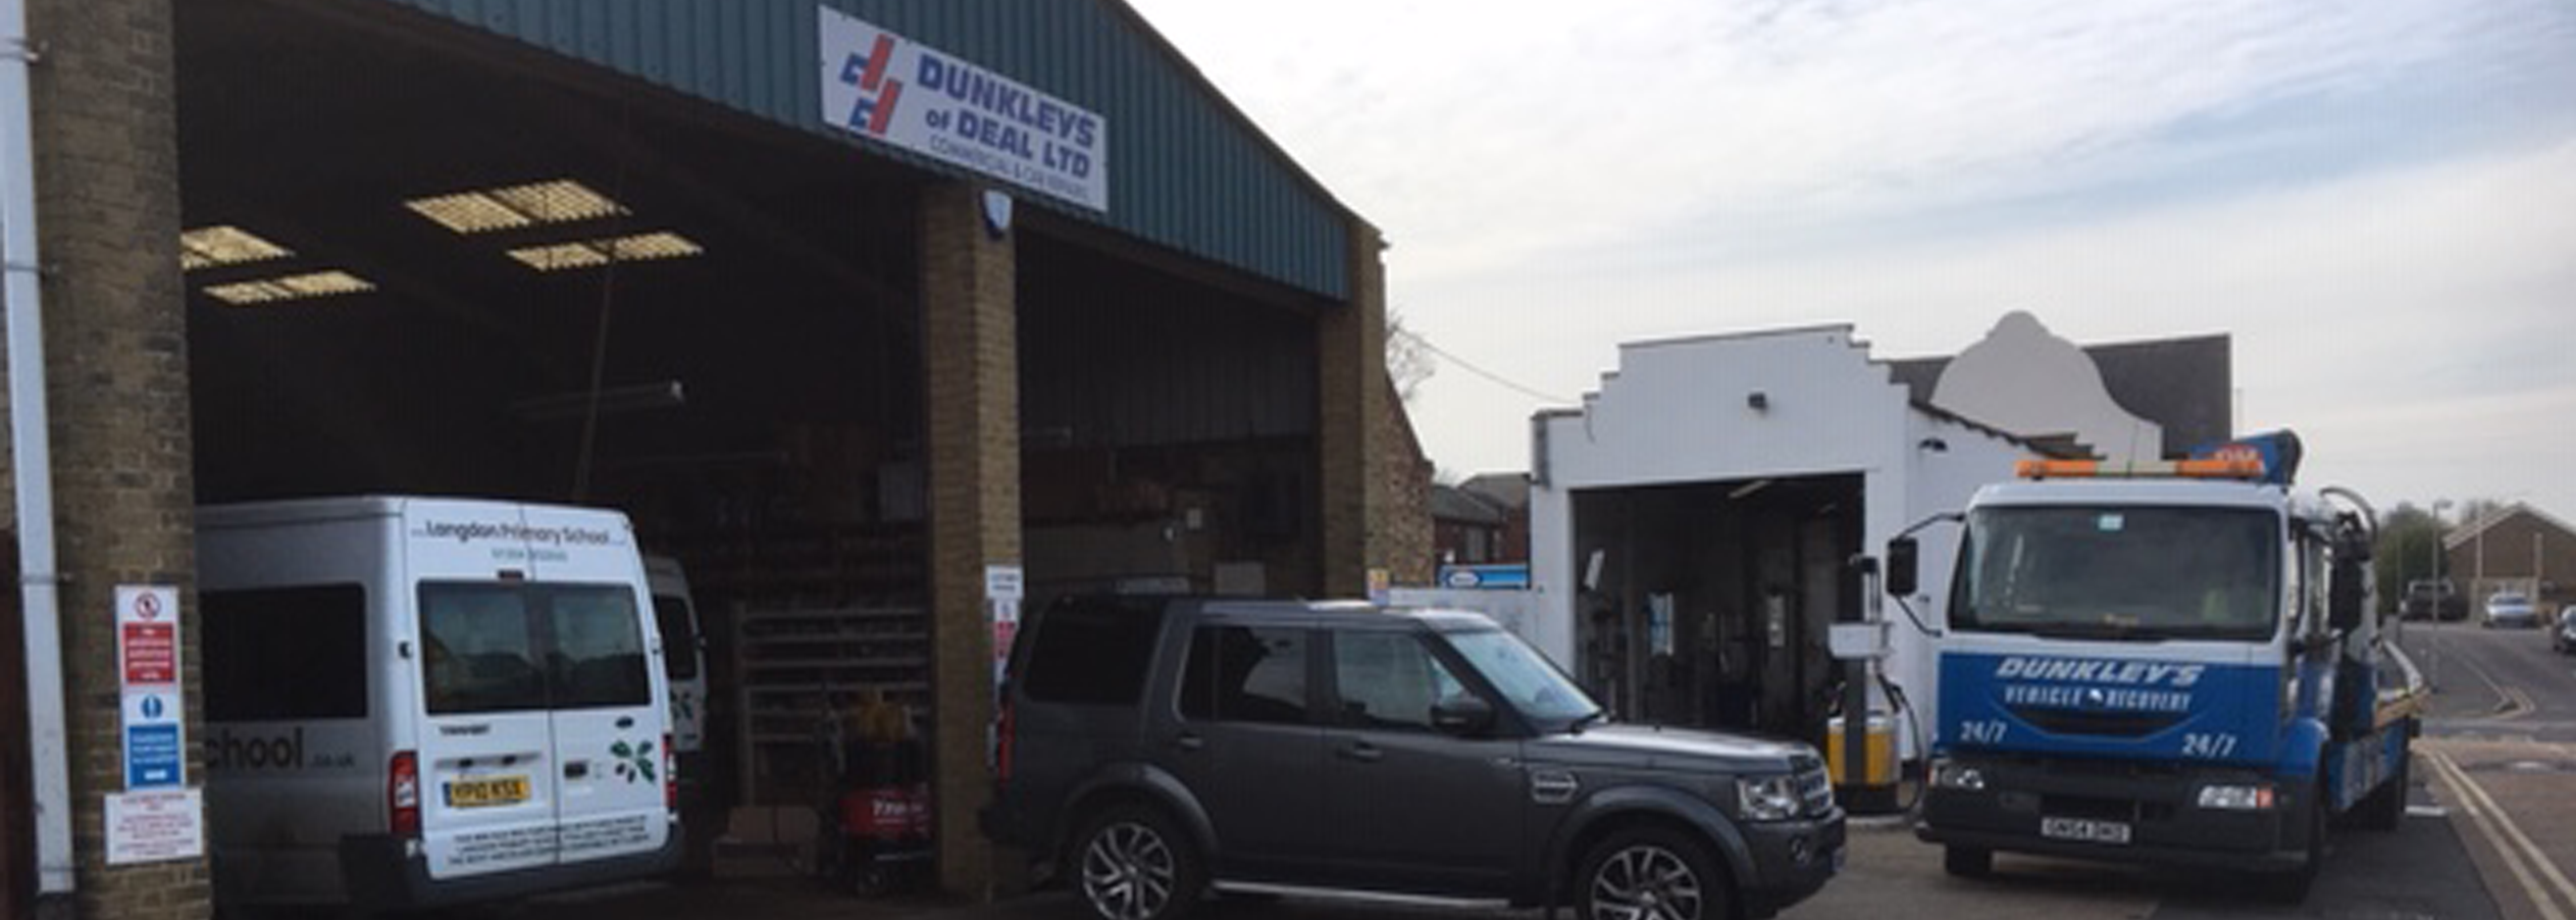 MOTs, Cars, Motorhomes and Commercials in Deal, Kent